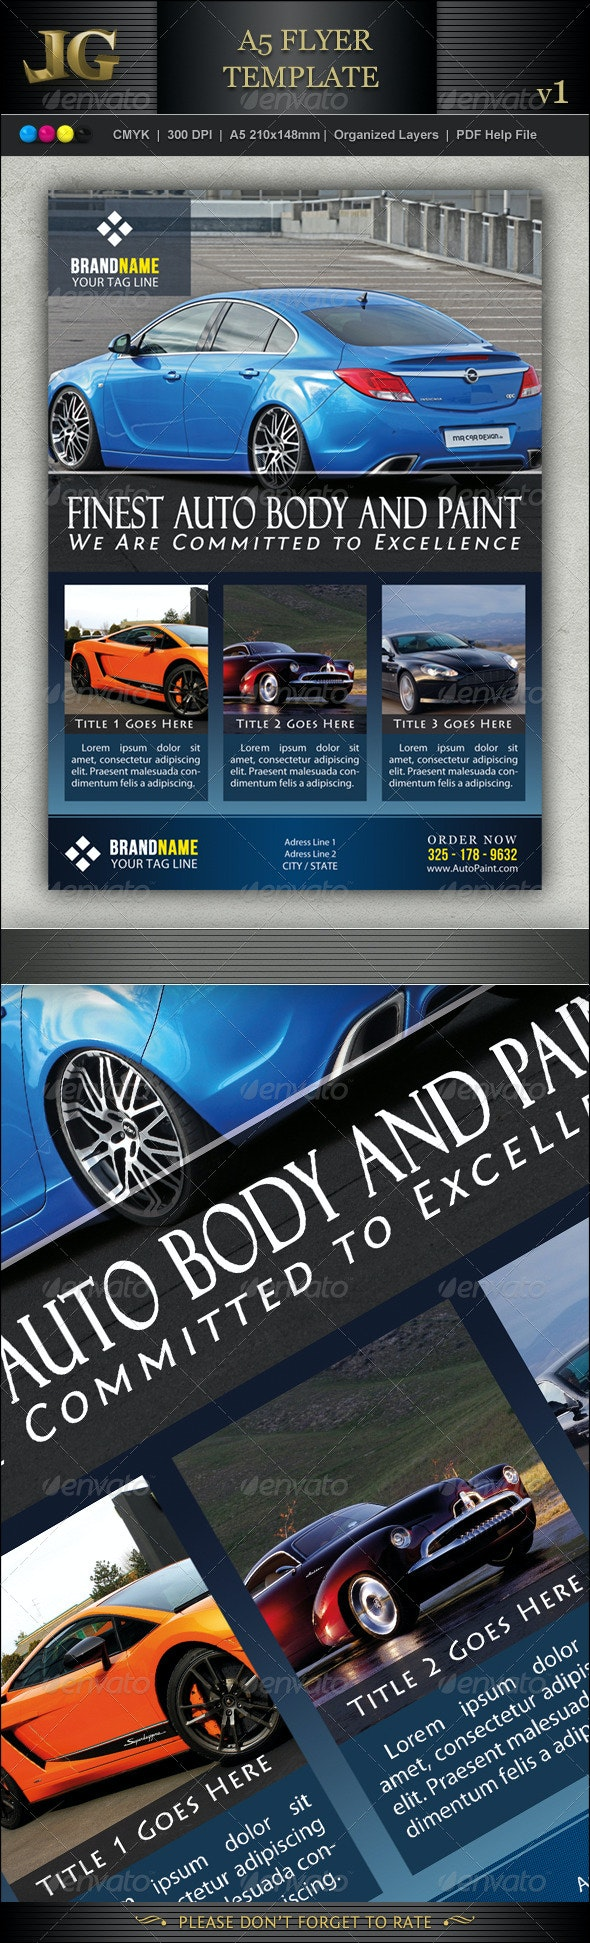 A5 Flyer Template V1 - Corporate Flyers